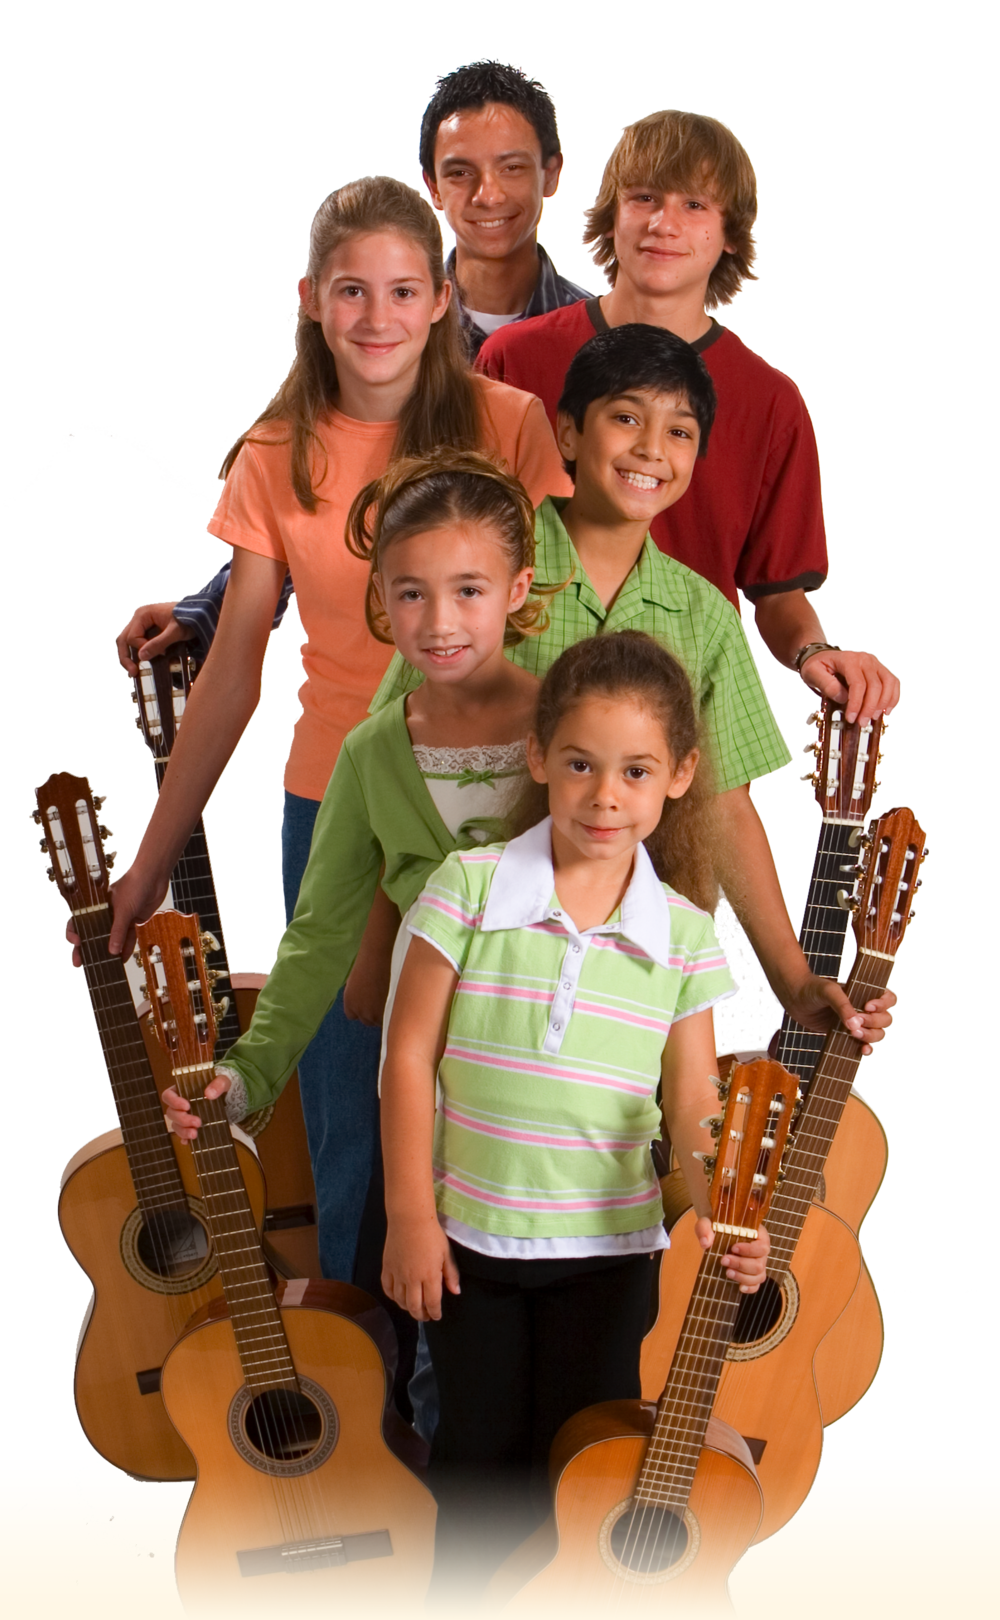 group guitar lesson or classes in katy tx